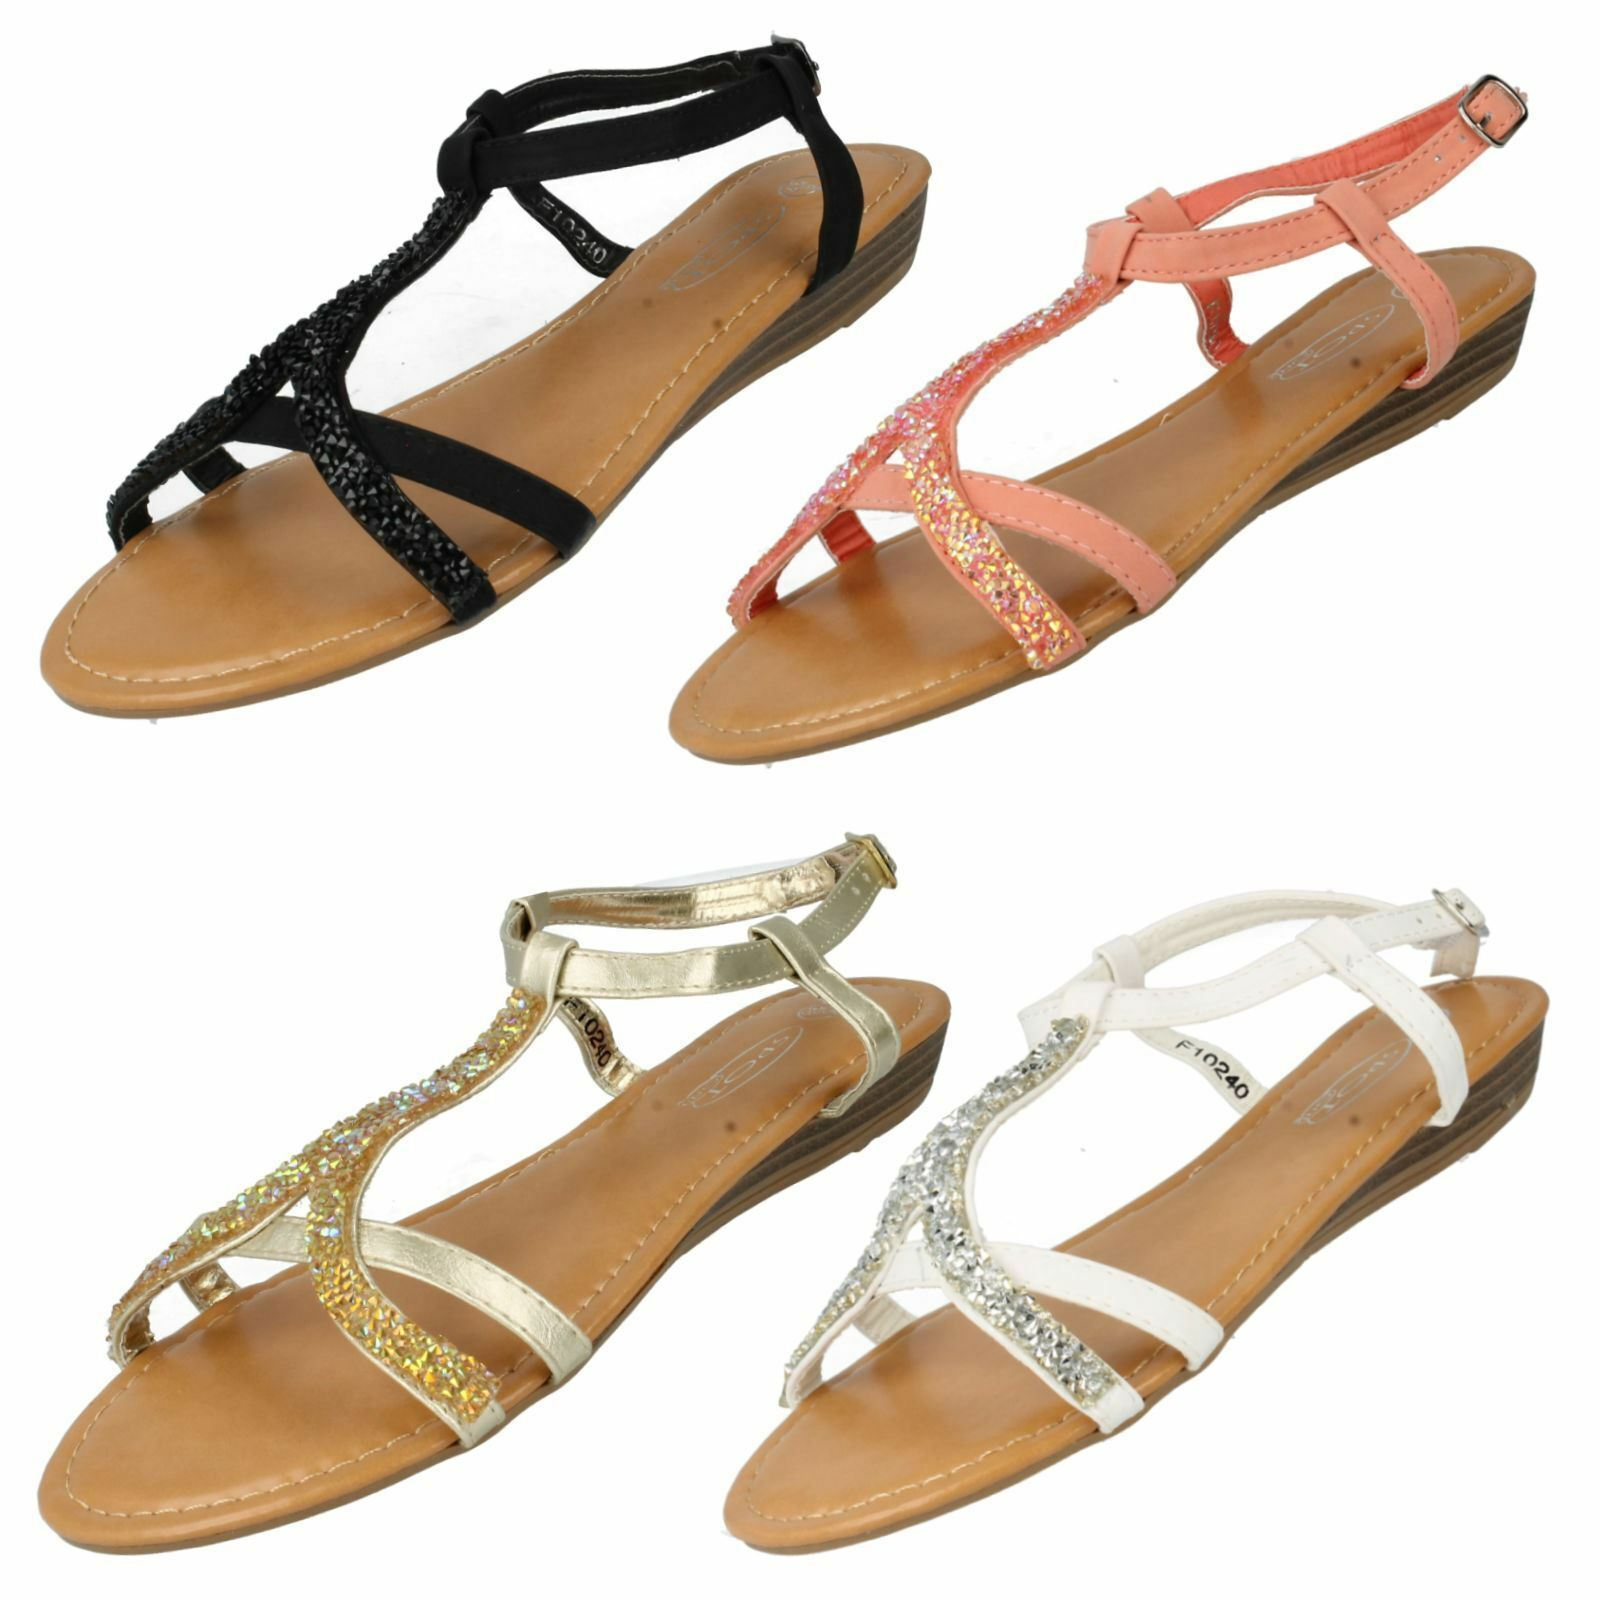 Spot On F10240 Sandals Ladies Ankle Strap Sandals F10240 White, Gold Or Pink UK3-8 (R12B) 7ee225